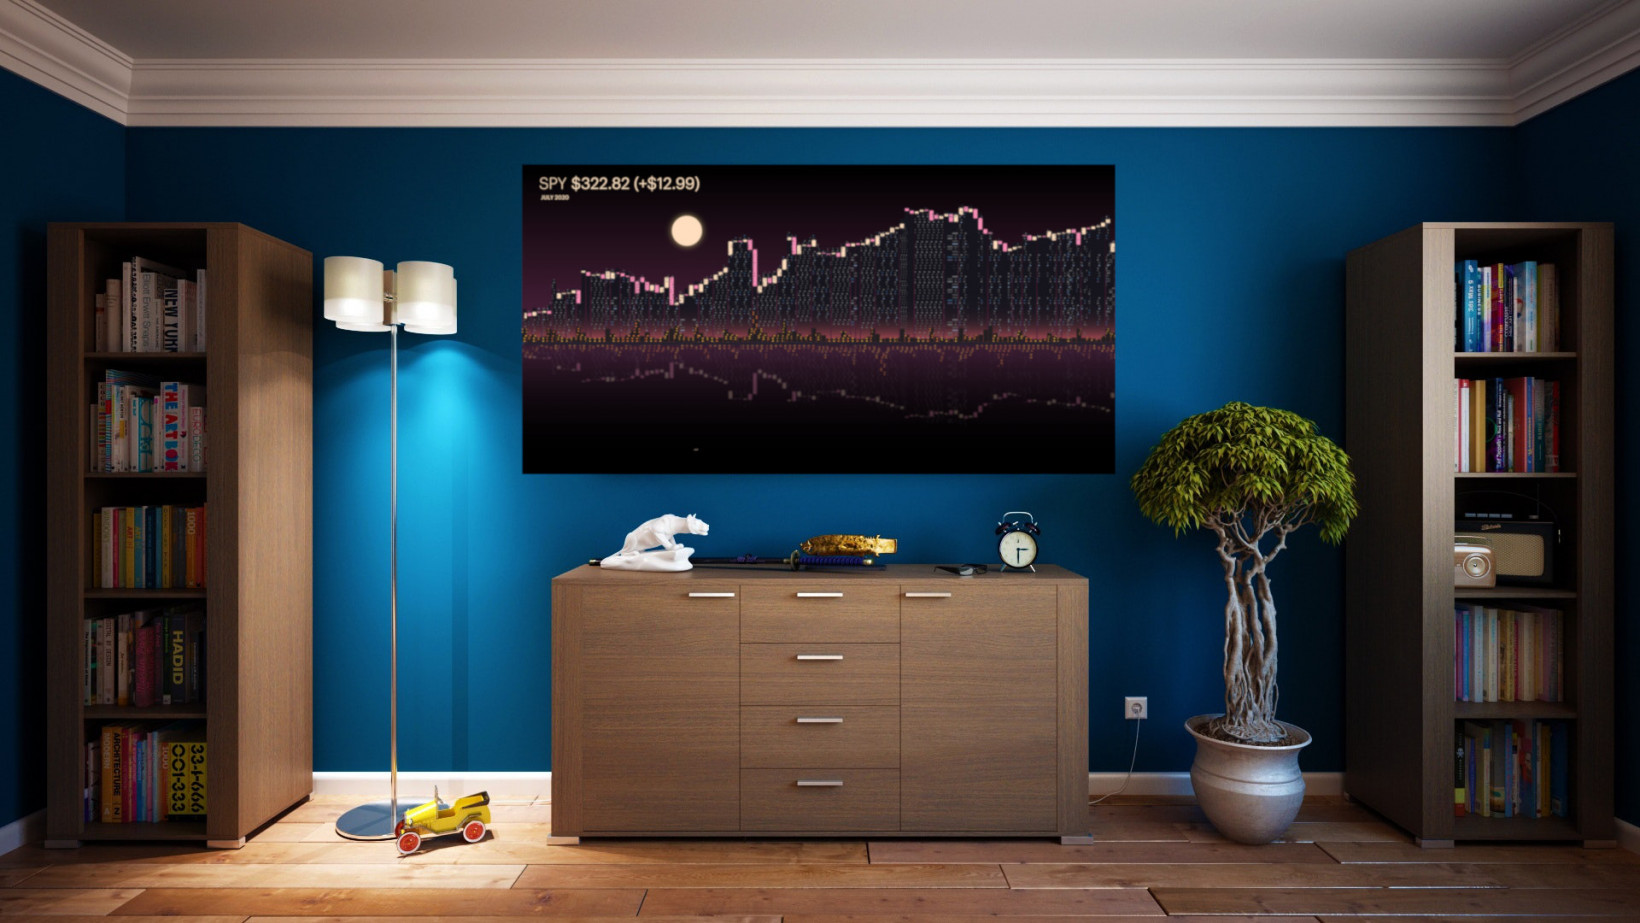 This artist turns boring stock market data into gorgeous minimalist art